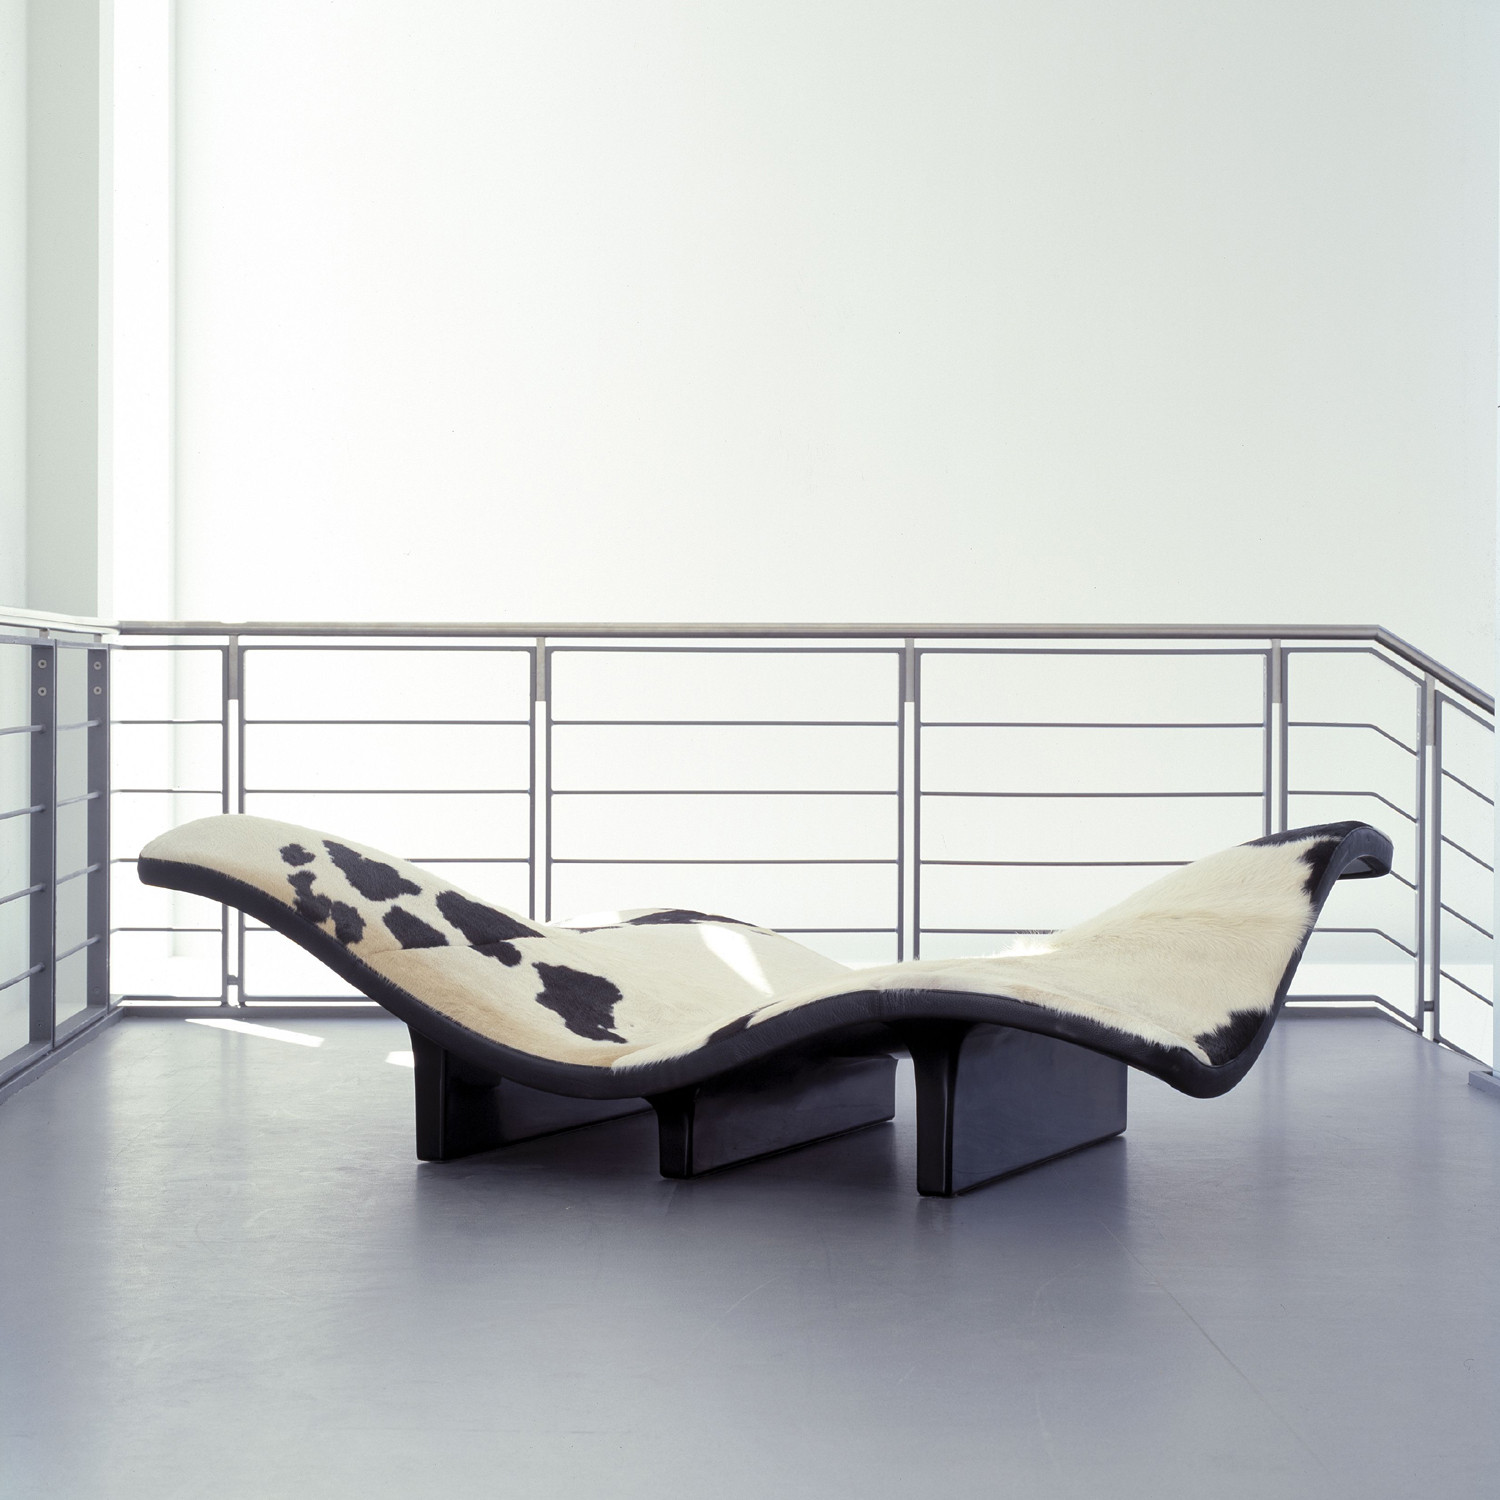 EJ 142 Waves Bench